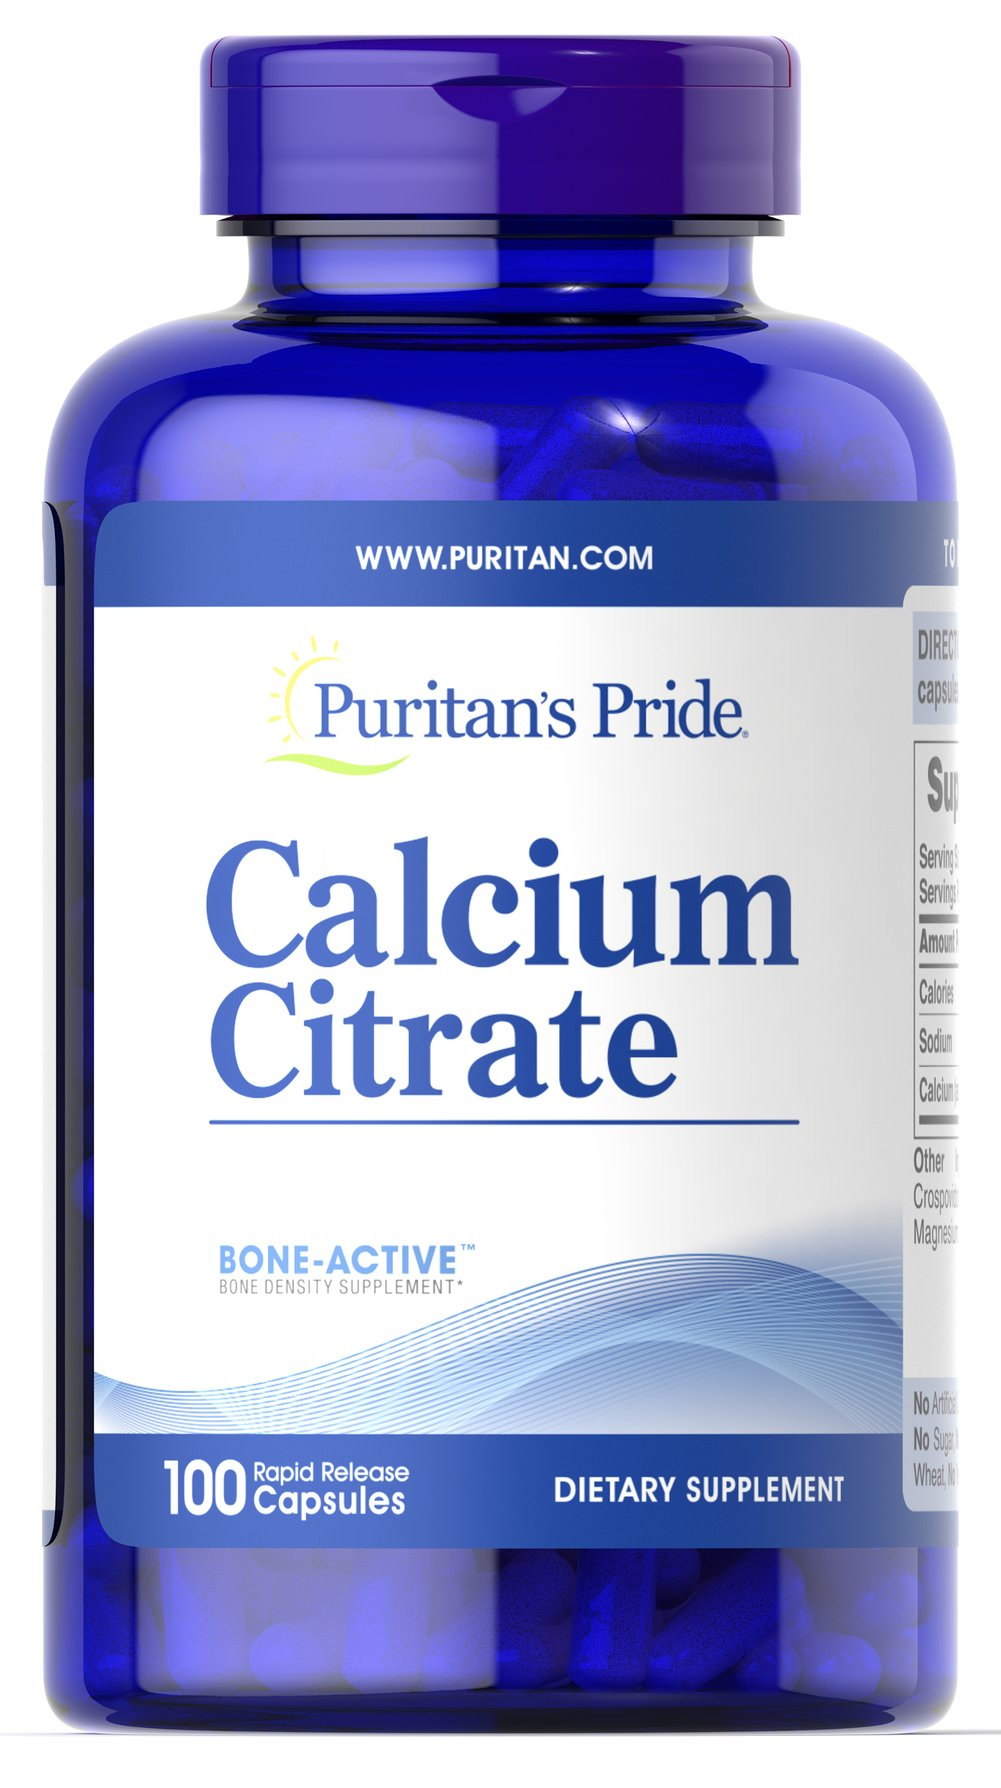 Calcium Citrate <p>Calcium is a major mineral essential for proper nutrition.** Your body could not survive without it. Calcium promotes bone strength, but also helps to maintain the health of other vital systems in the body, including the heart, muscles and nerves.** Some scientific studies indicate that Calcium Citrate may support the health of the colon.**</p> 100 Capsules 250 mg $15.39